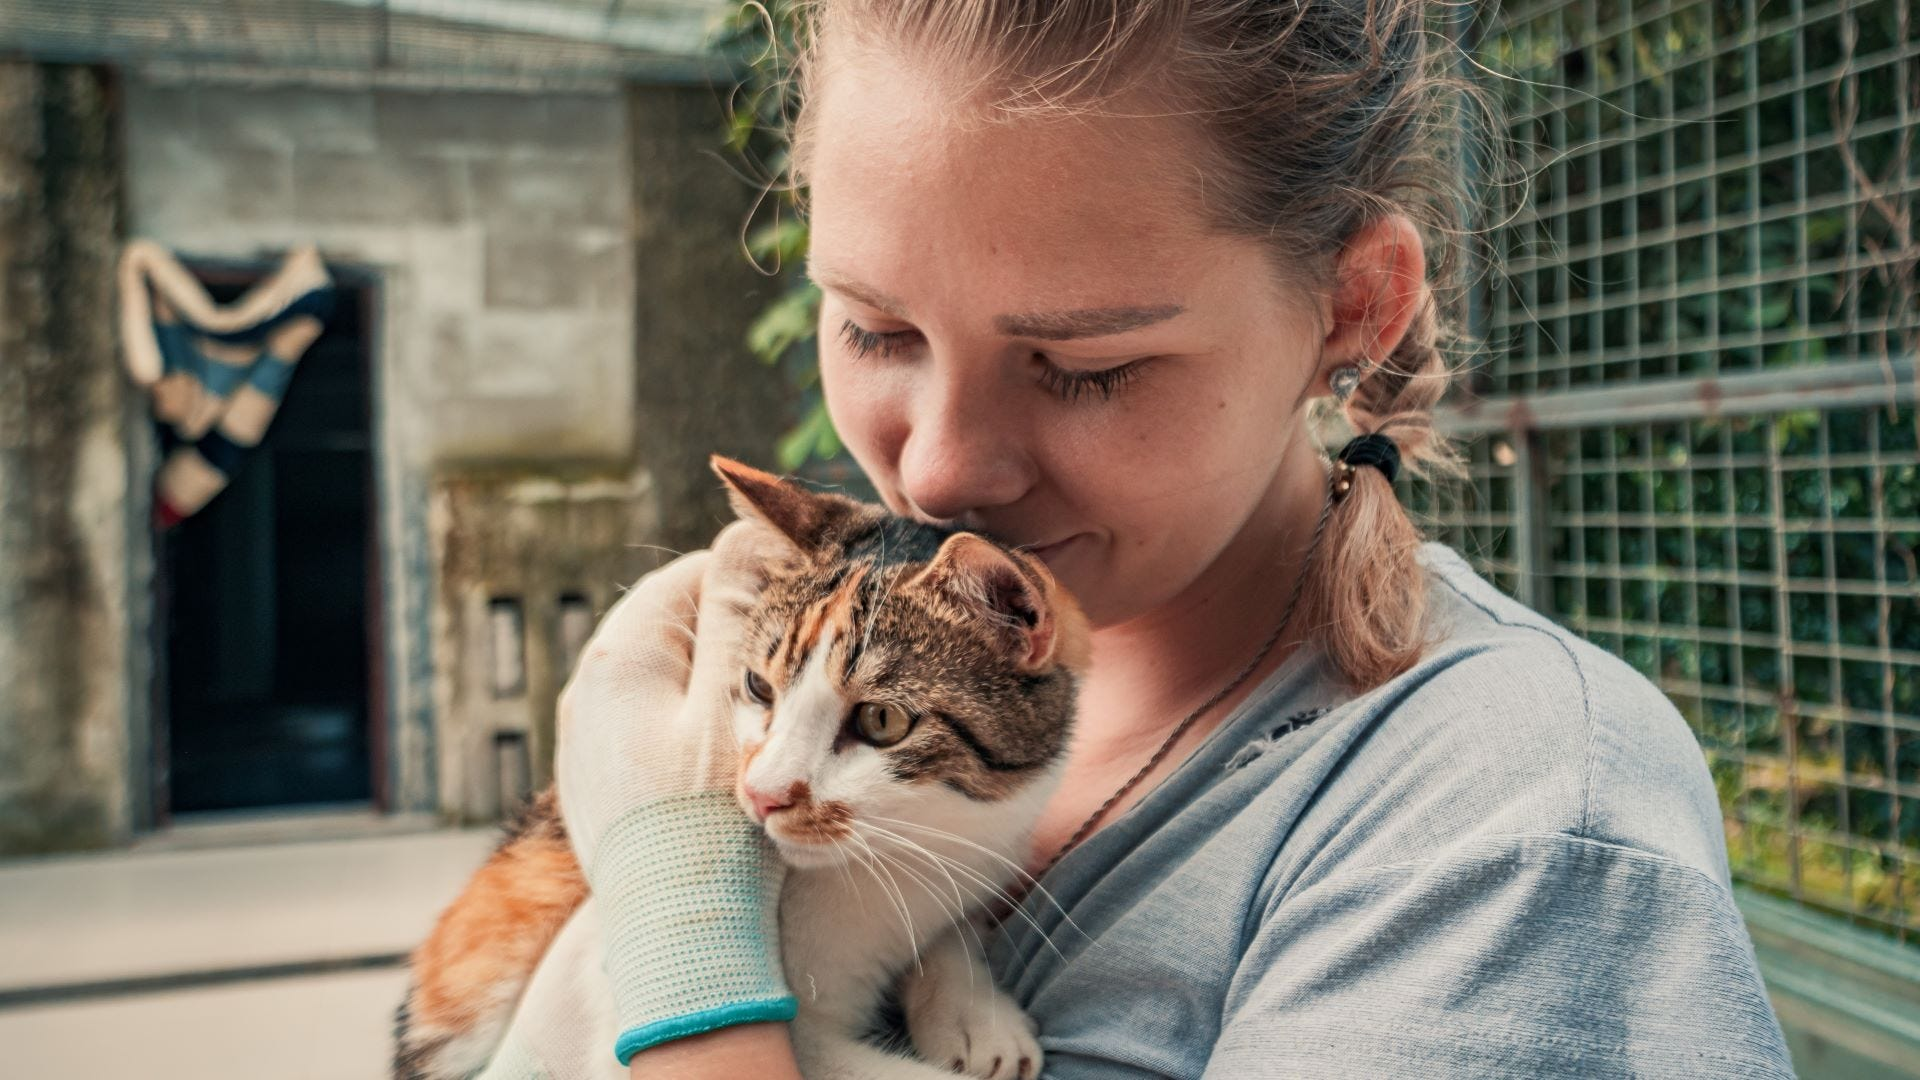 A young girl at an animal shelter holding a cat.